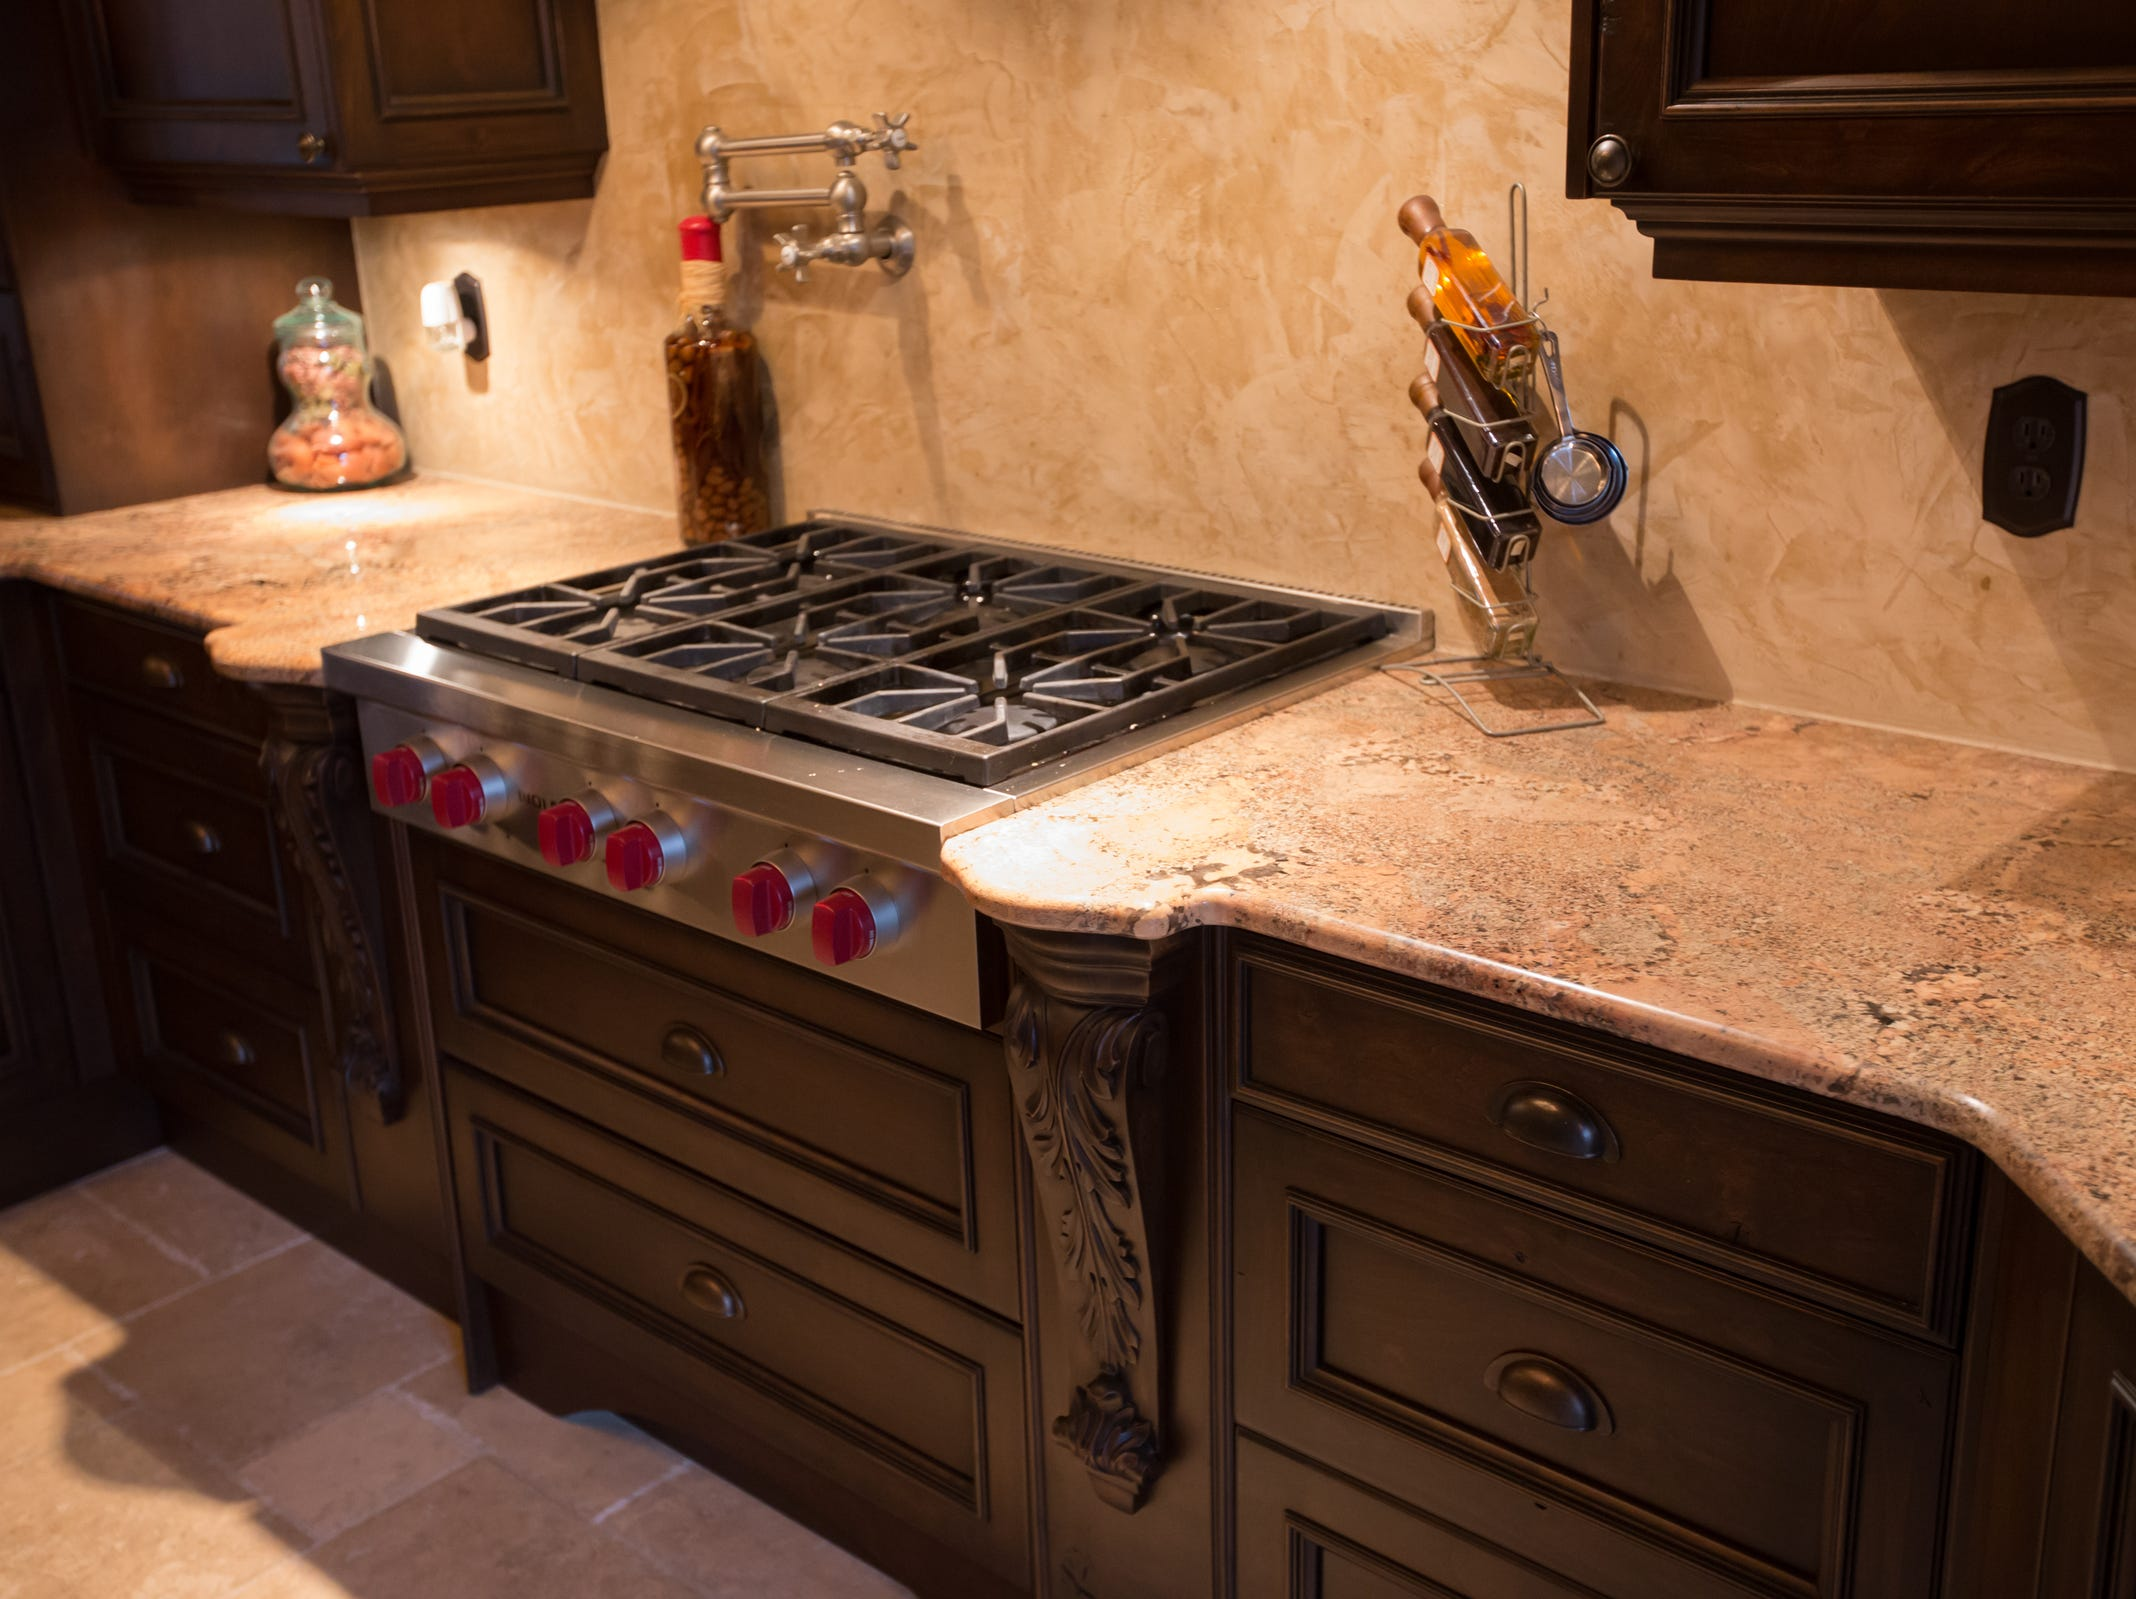 A Wolf stainless still gas cooktop in the kitchen.